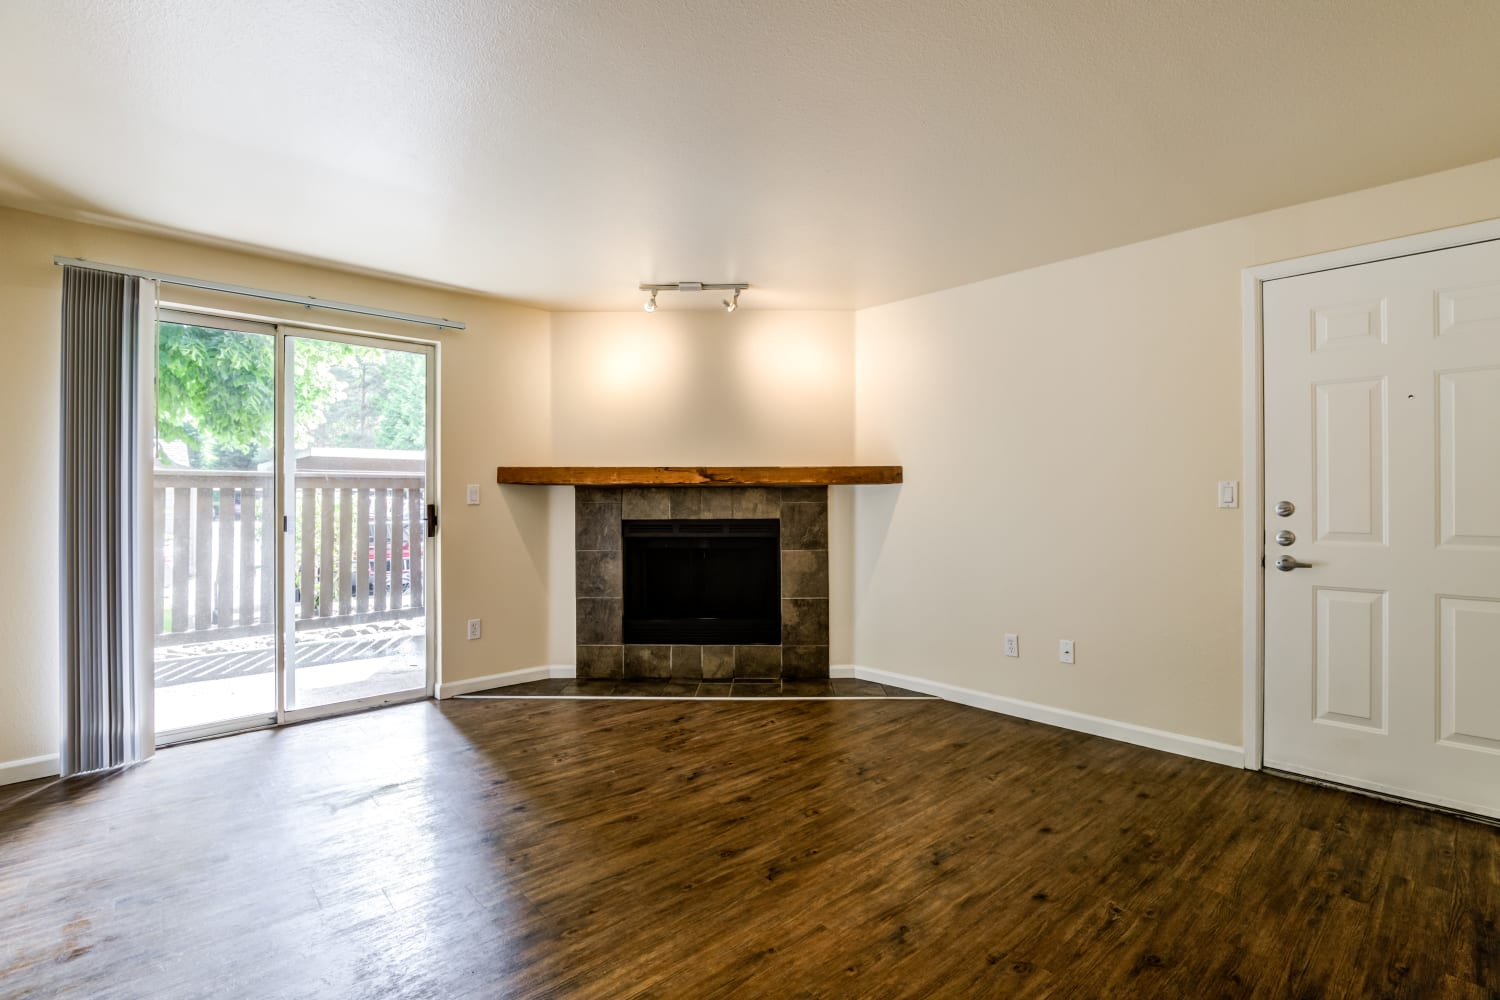 Campbell Run Apartments offers a Living Room featuring a fireplace and hardwood floors in Woodinville, Washington